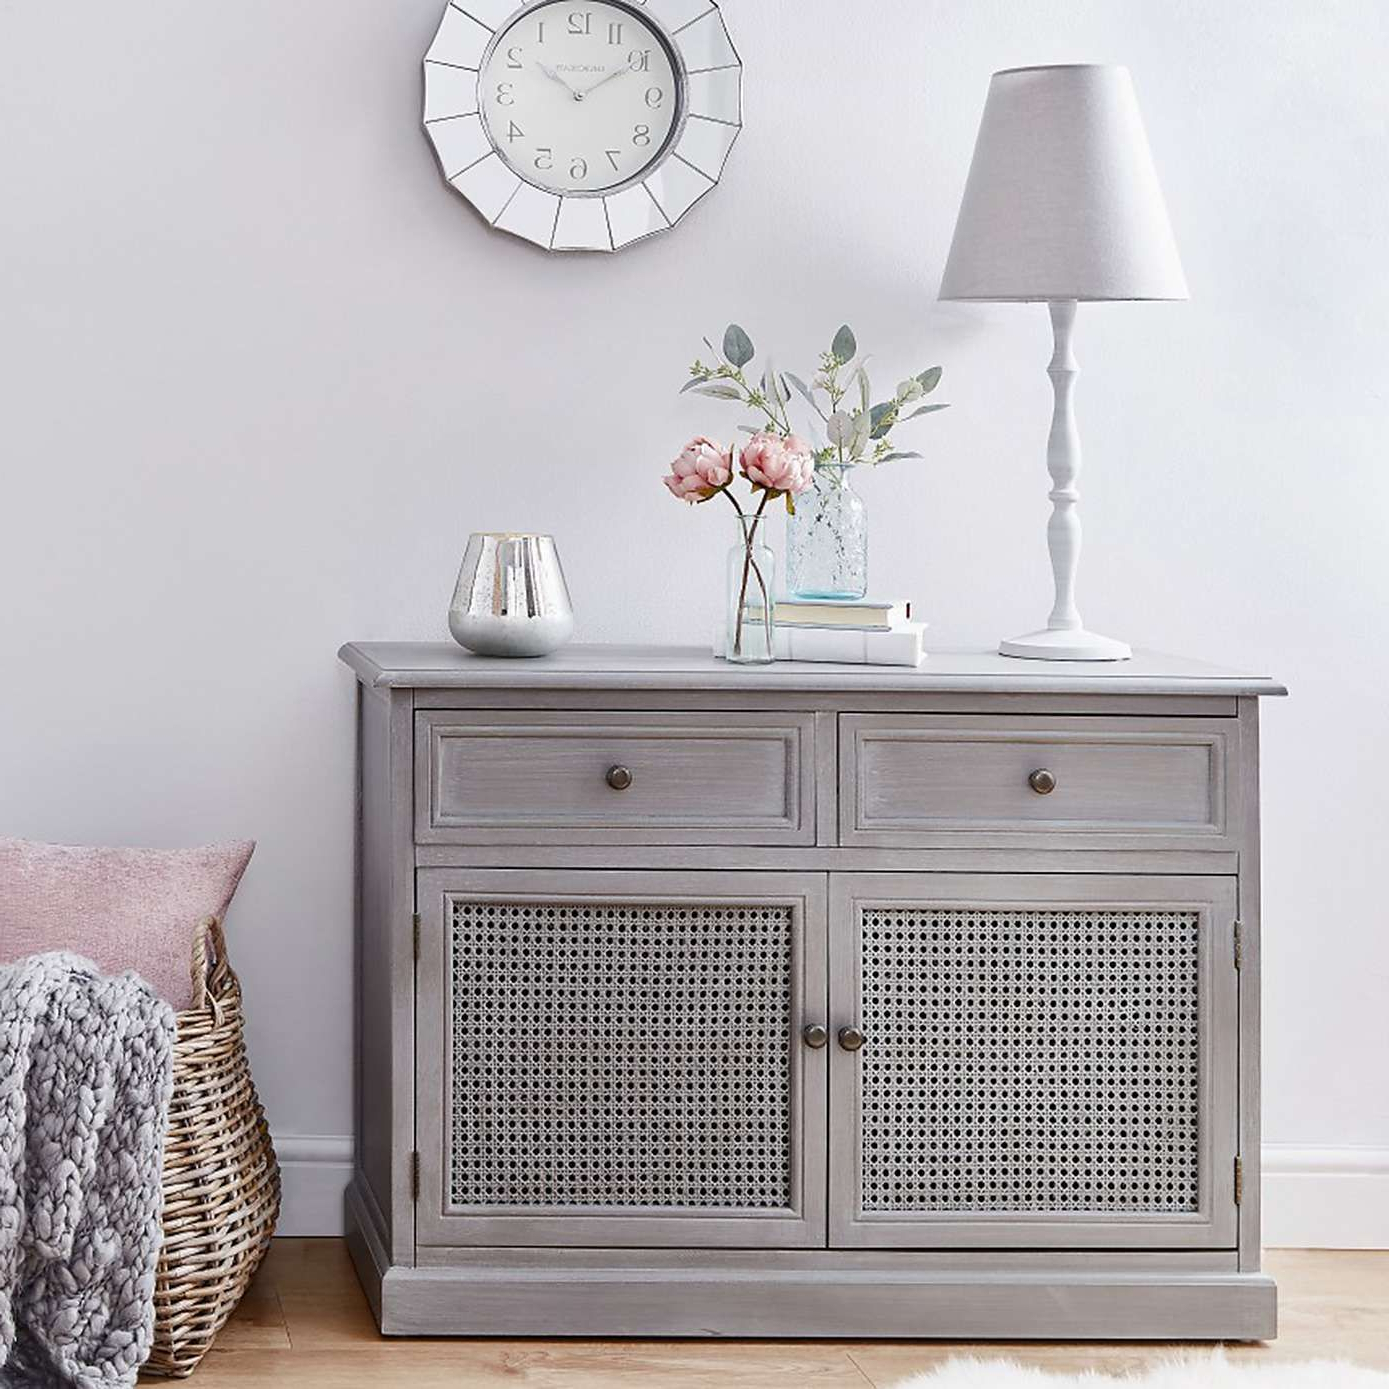 Lucy Cane Grey Small Sideboard | Living Room Ideas In 2019 Within Hayter Sideboards (View 4 of 20)